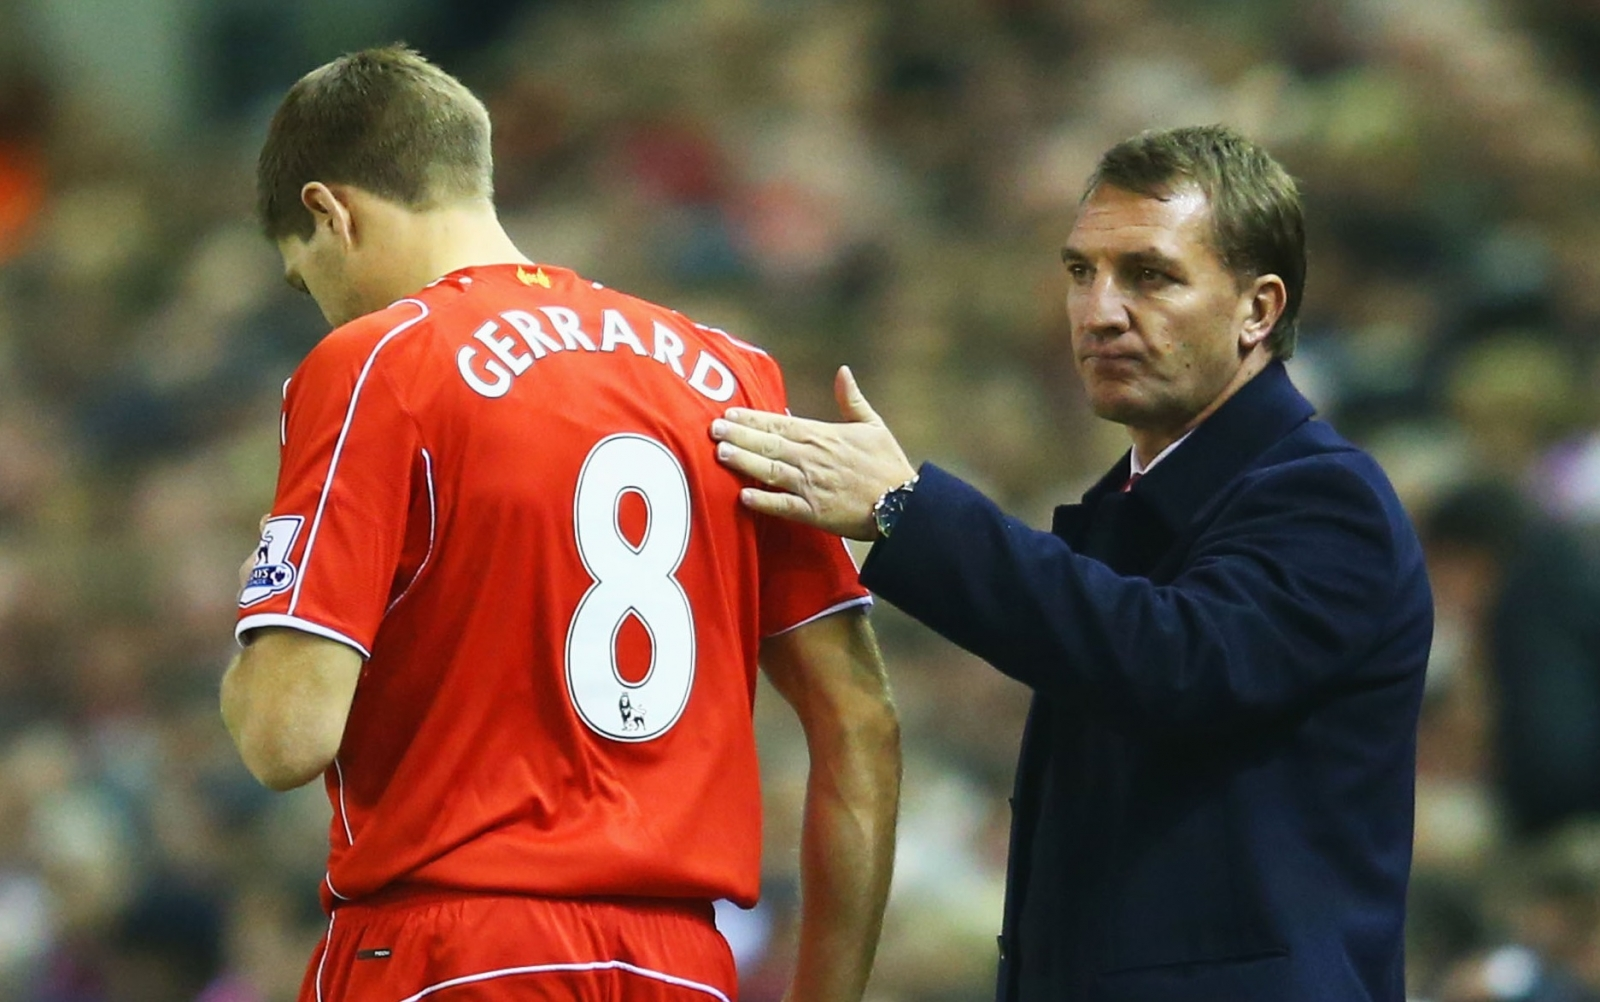 Steven Gerrard and Brendan Rodgers